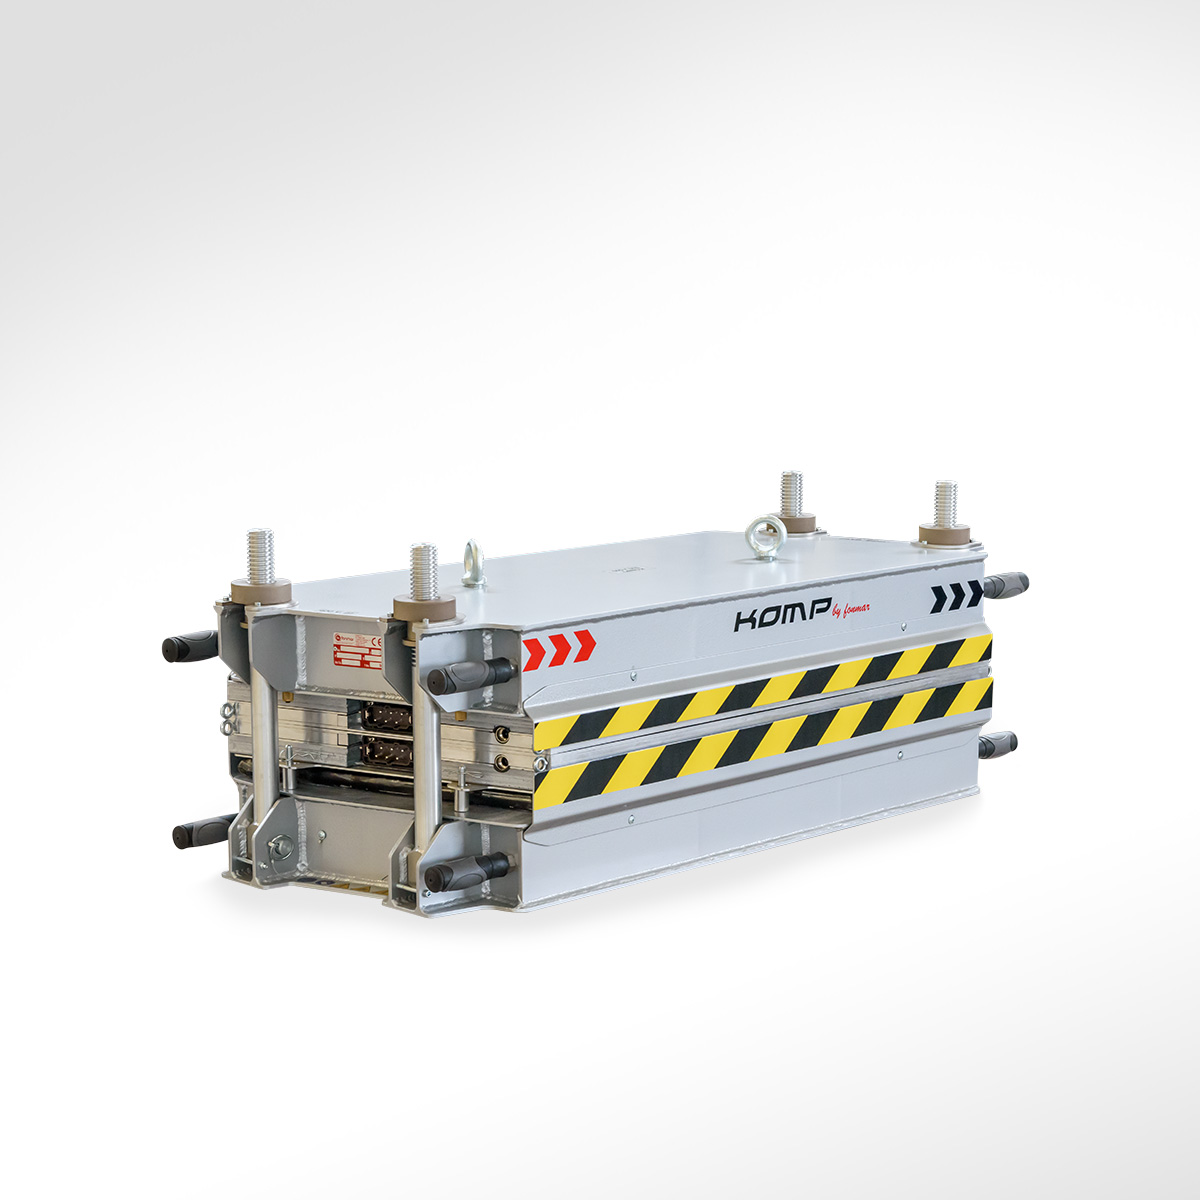 Komp - Portable presses - Water-cooled